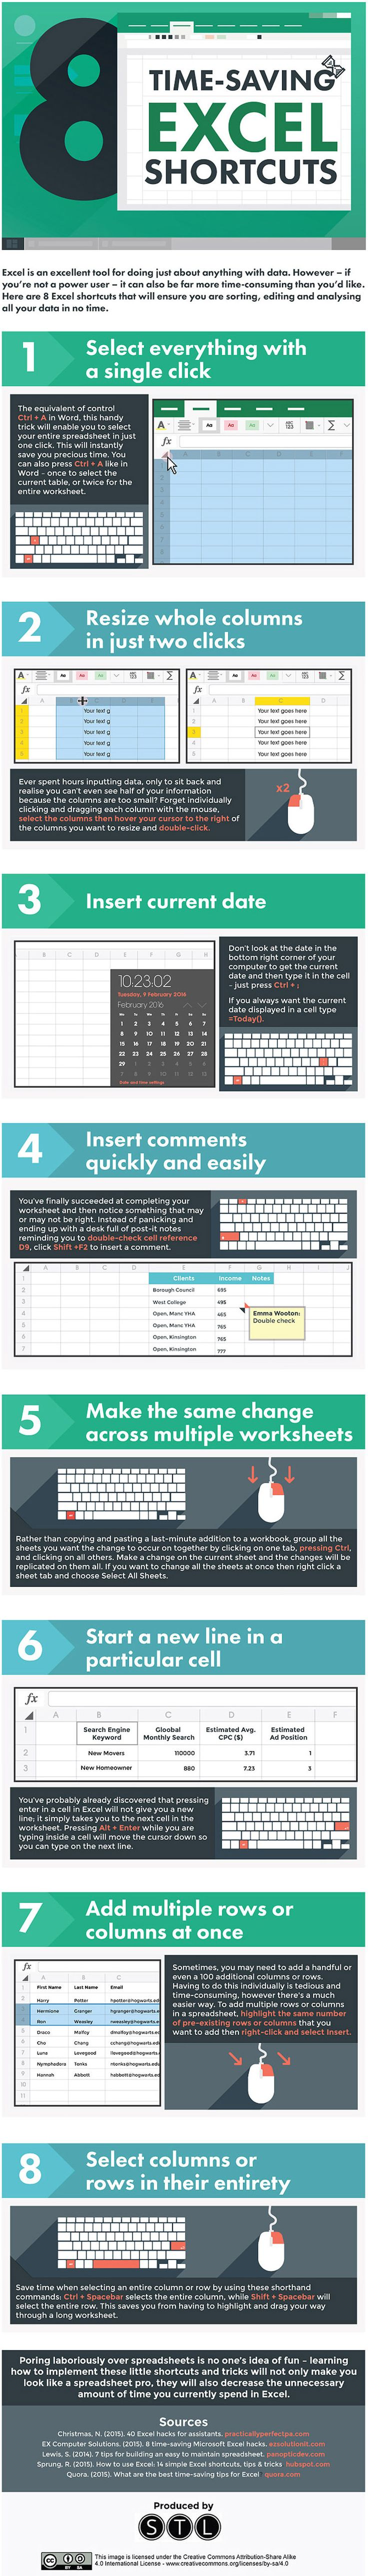 Excel has always been associated with office work and spreadsheets (and less associated with the oh-so-cool production of artwork) which are long, mundane, repetitive tasks that we try to, but can never seem to be able to, avoid doing. That's why time-saving tricks and shortcuts are great hacks